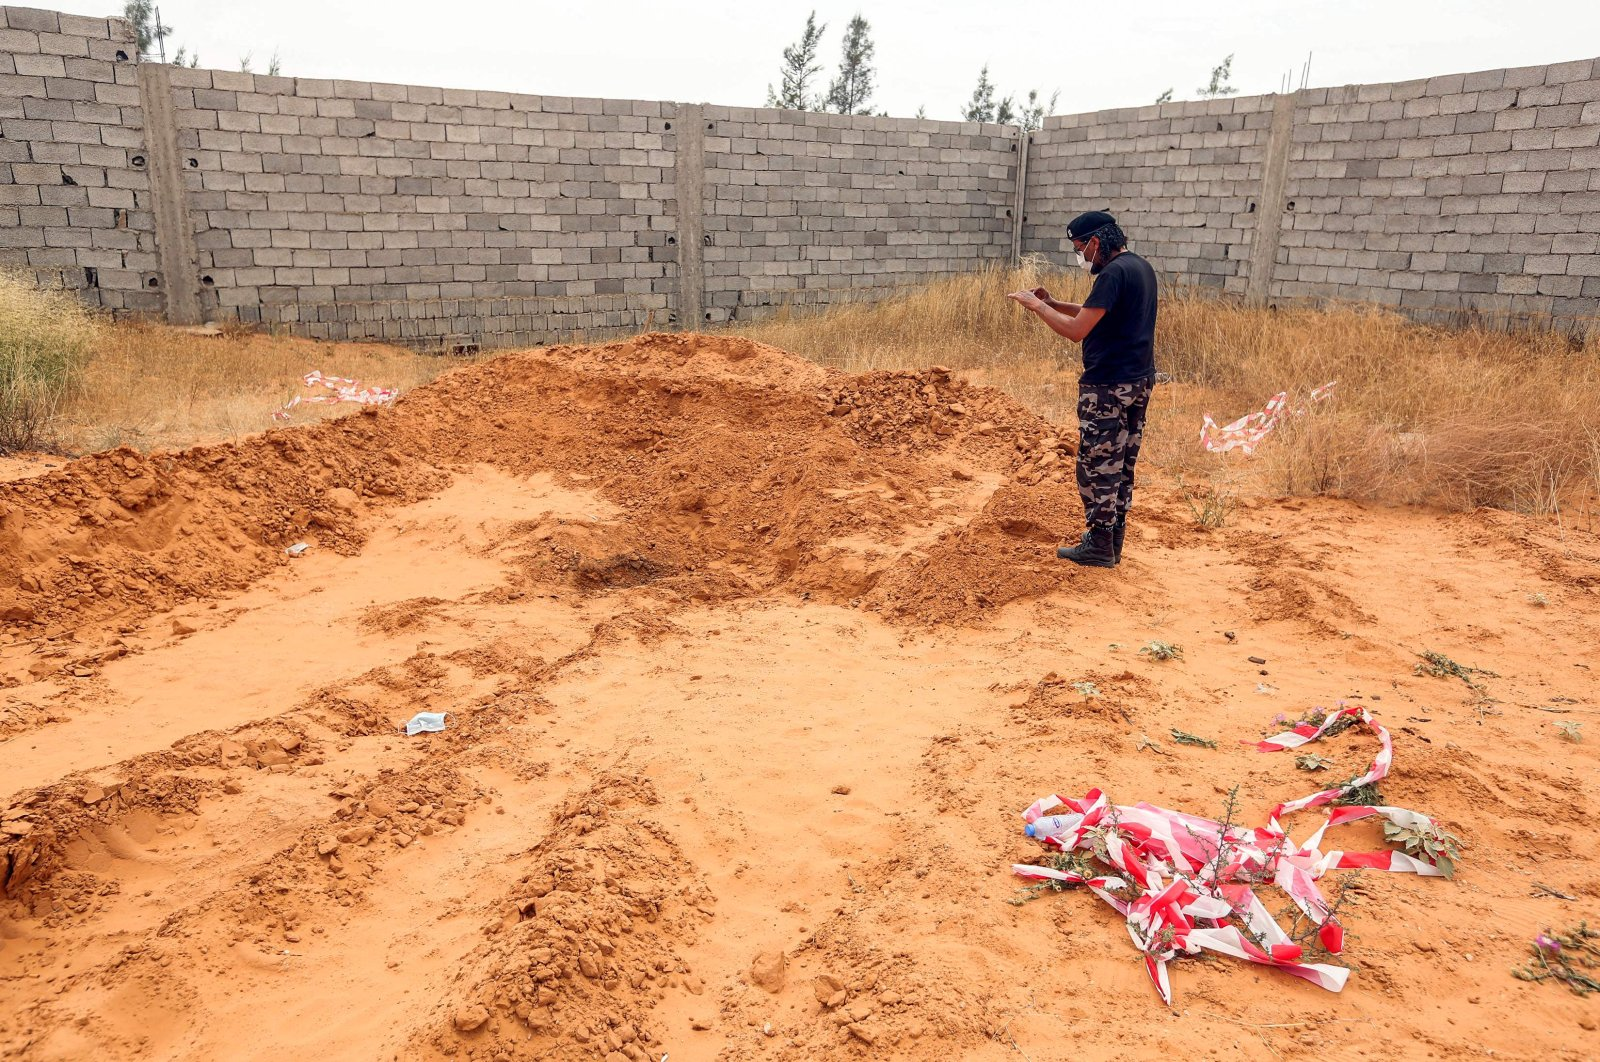 A member of security forces affiliated with the Interior Ministry of Libya's Government of National Accord (GNA) stands at the reported site of a mass grave in Tarhuna, 65 kilometers southeast of capital Tripoli, Libya, June 11, 2020. (AFP Photo)